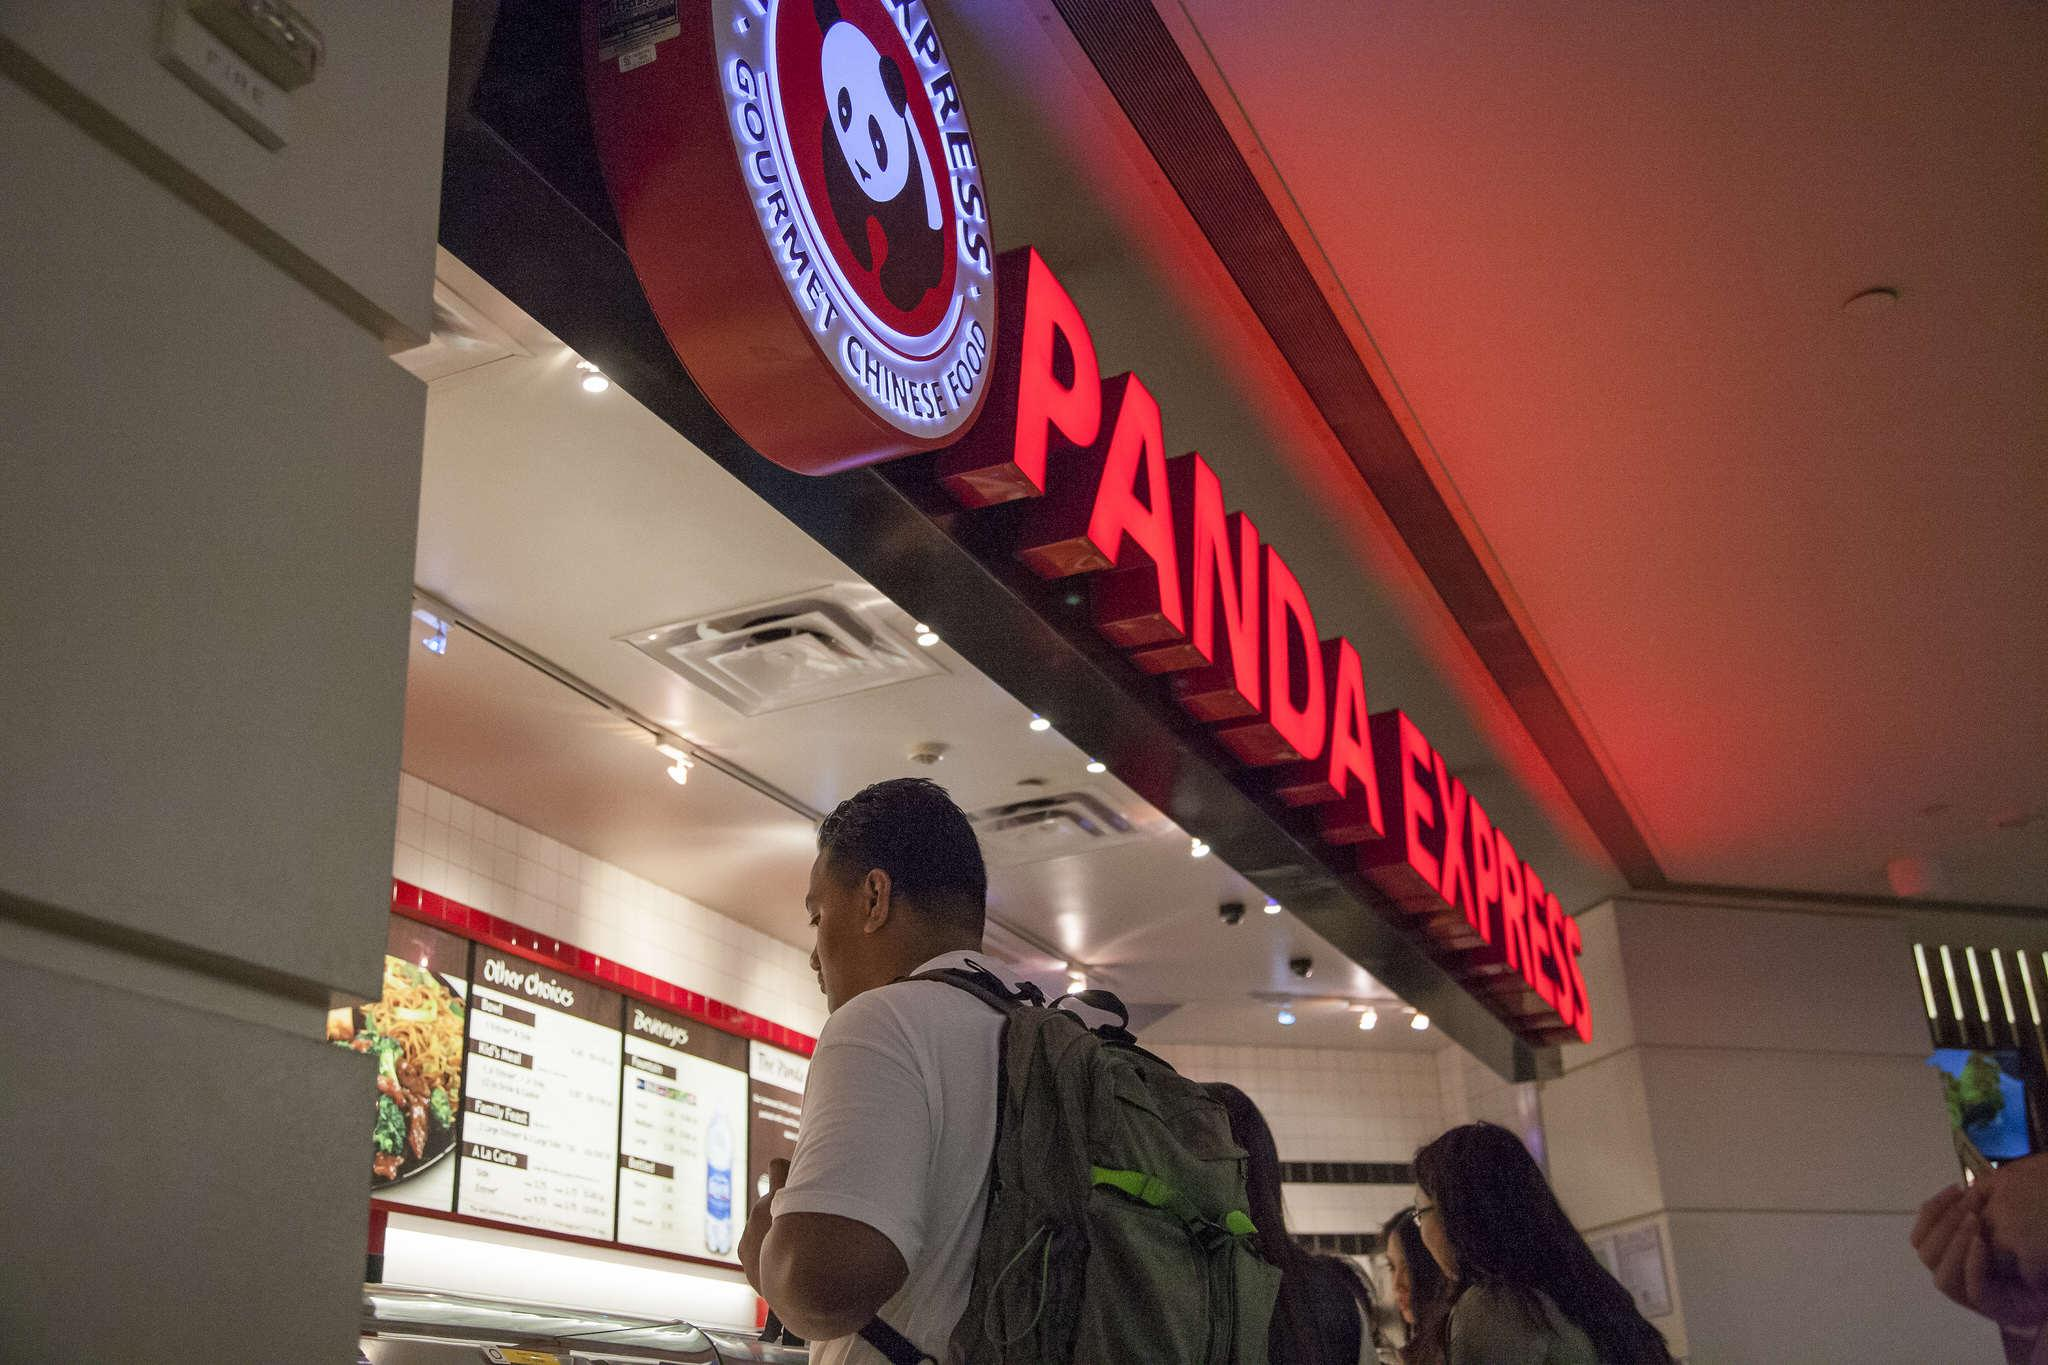 University should focus on healthier food options, not Panda Express